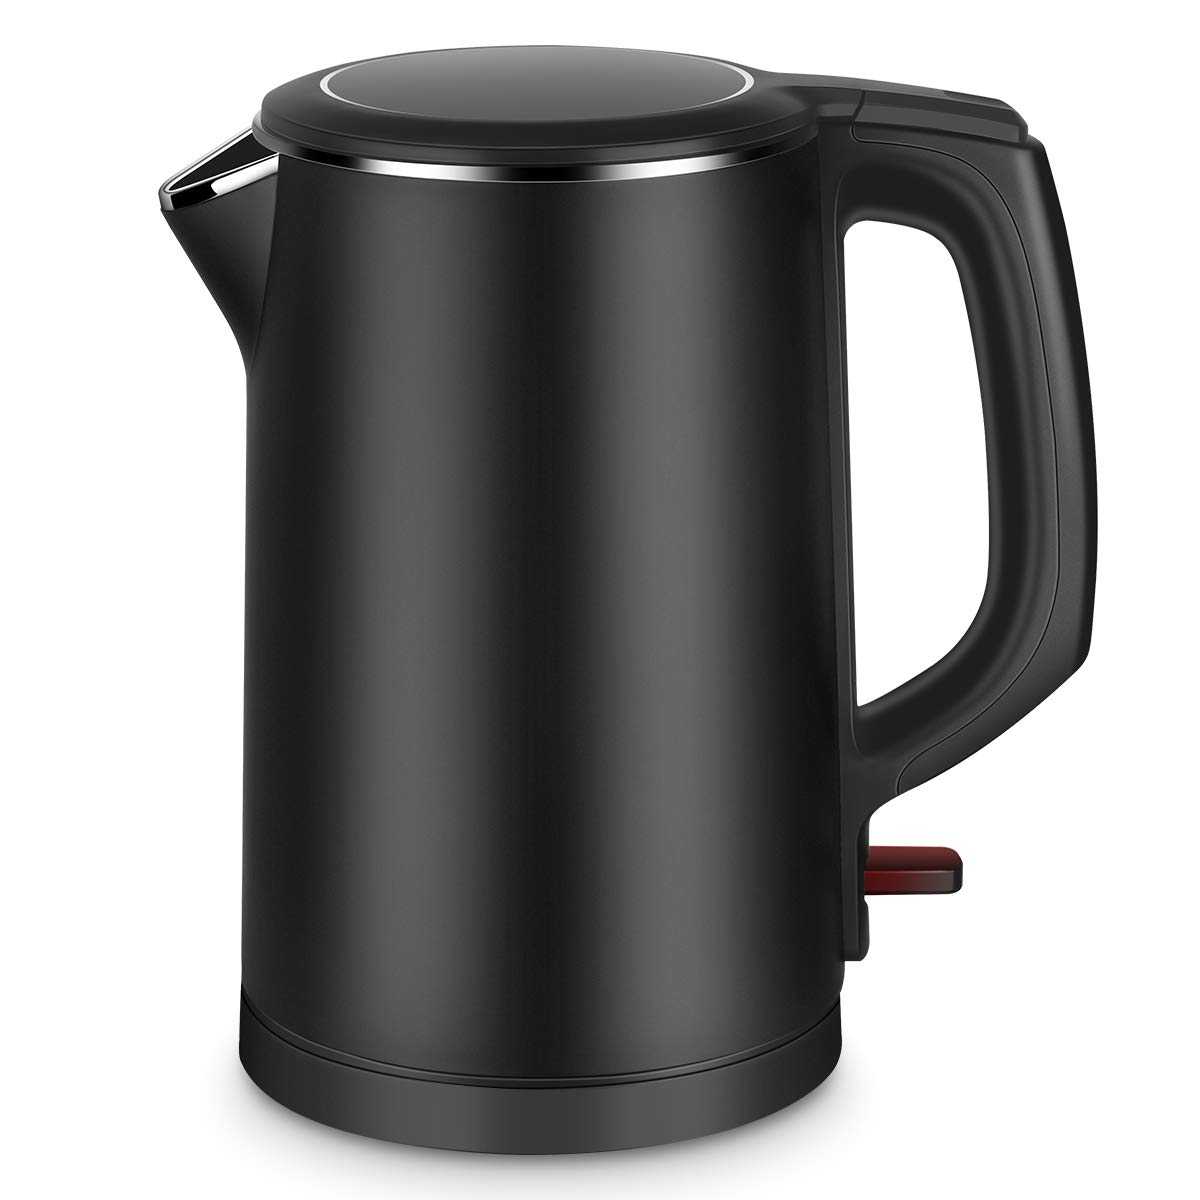 Electric Kettle, CUSIBOX 1.5L Stainless Steel Kettle Cool Touch Double Water Kettle with Overheating Protection, Boil Dry Protection and Automatic Shut Off